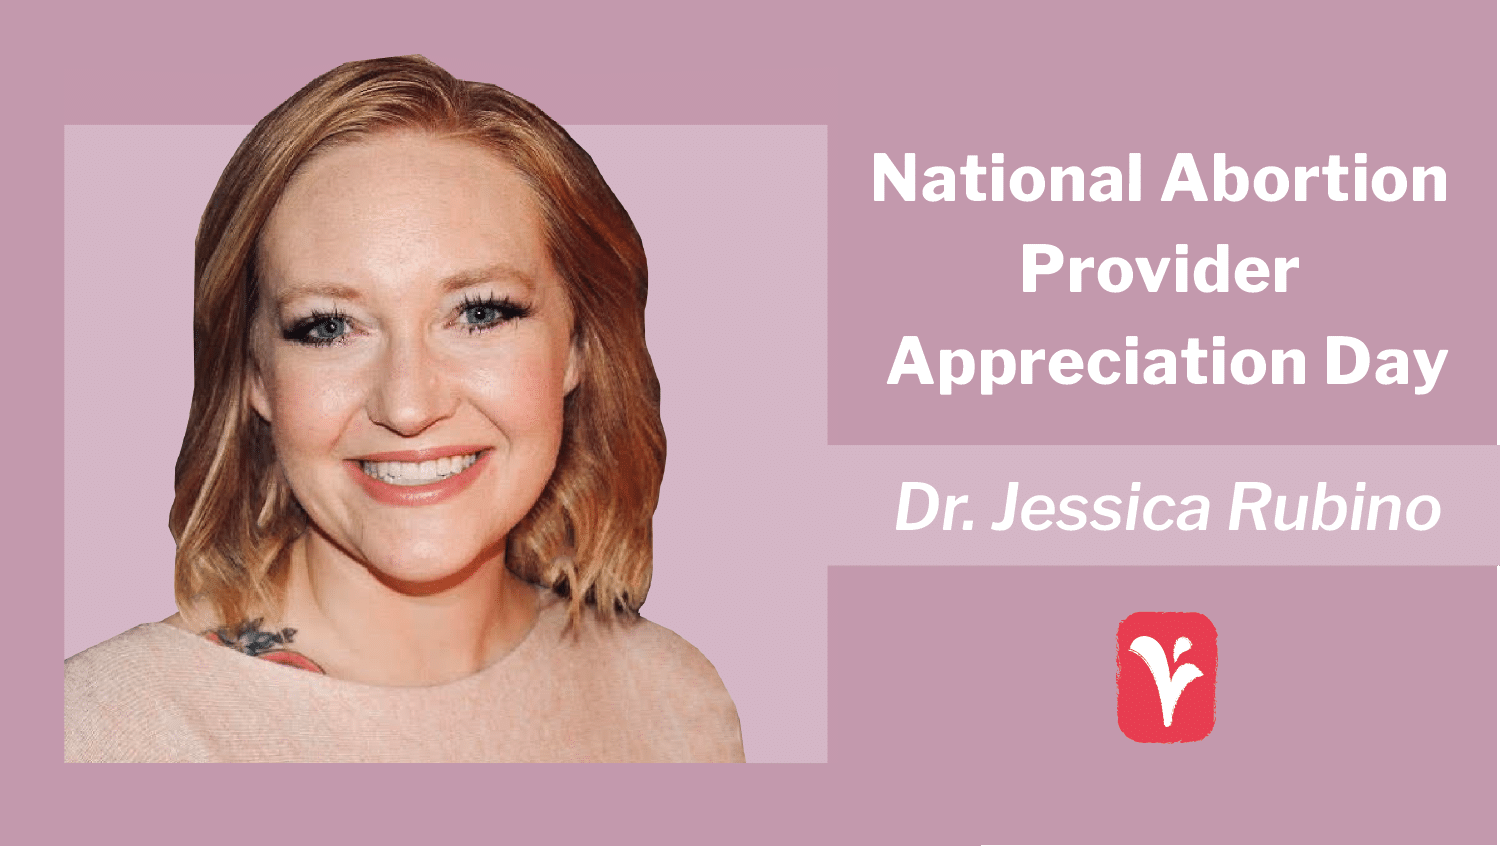 National Abortion Provider Appreciation Day